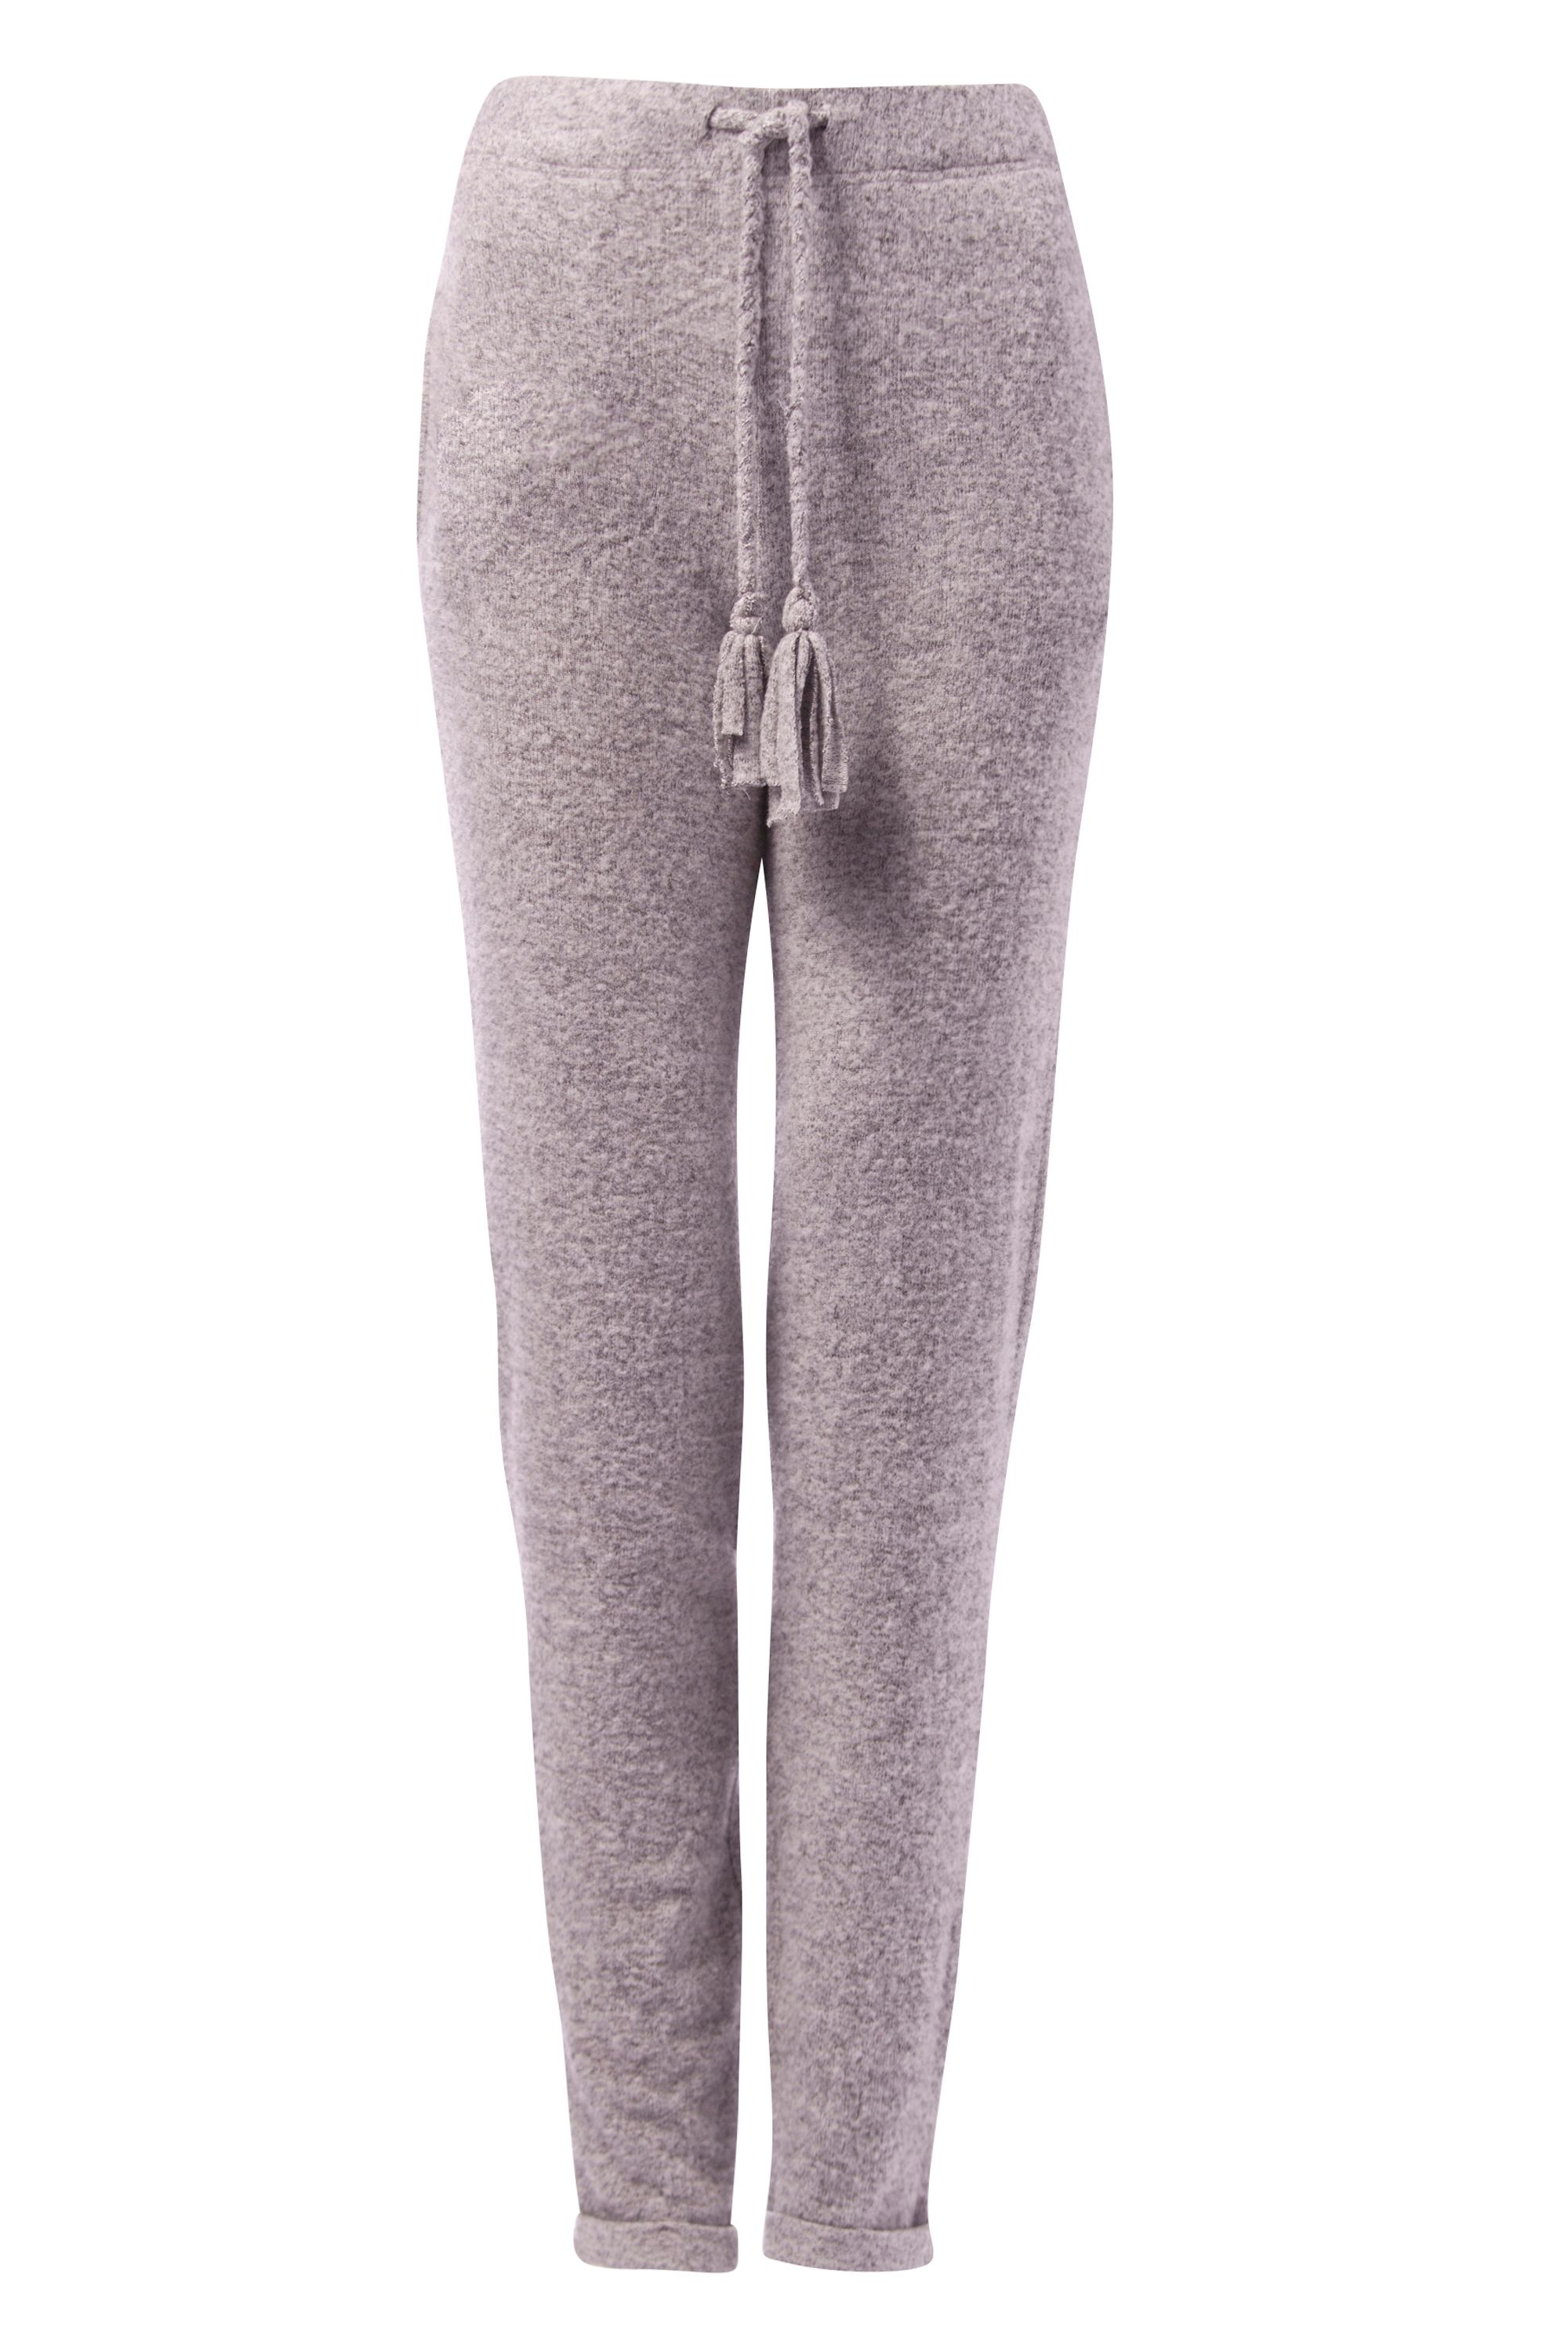 Tommy Hilfiger Super Soft Jog Pants, Grey